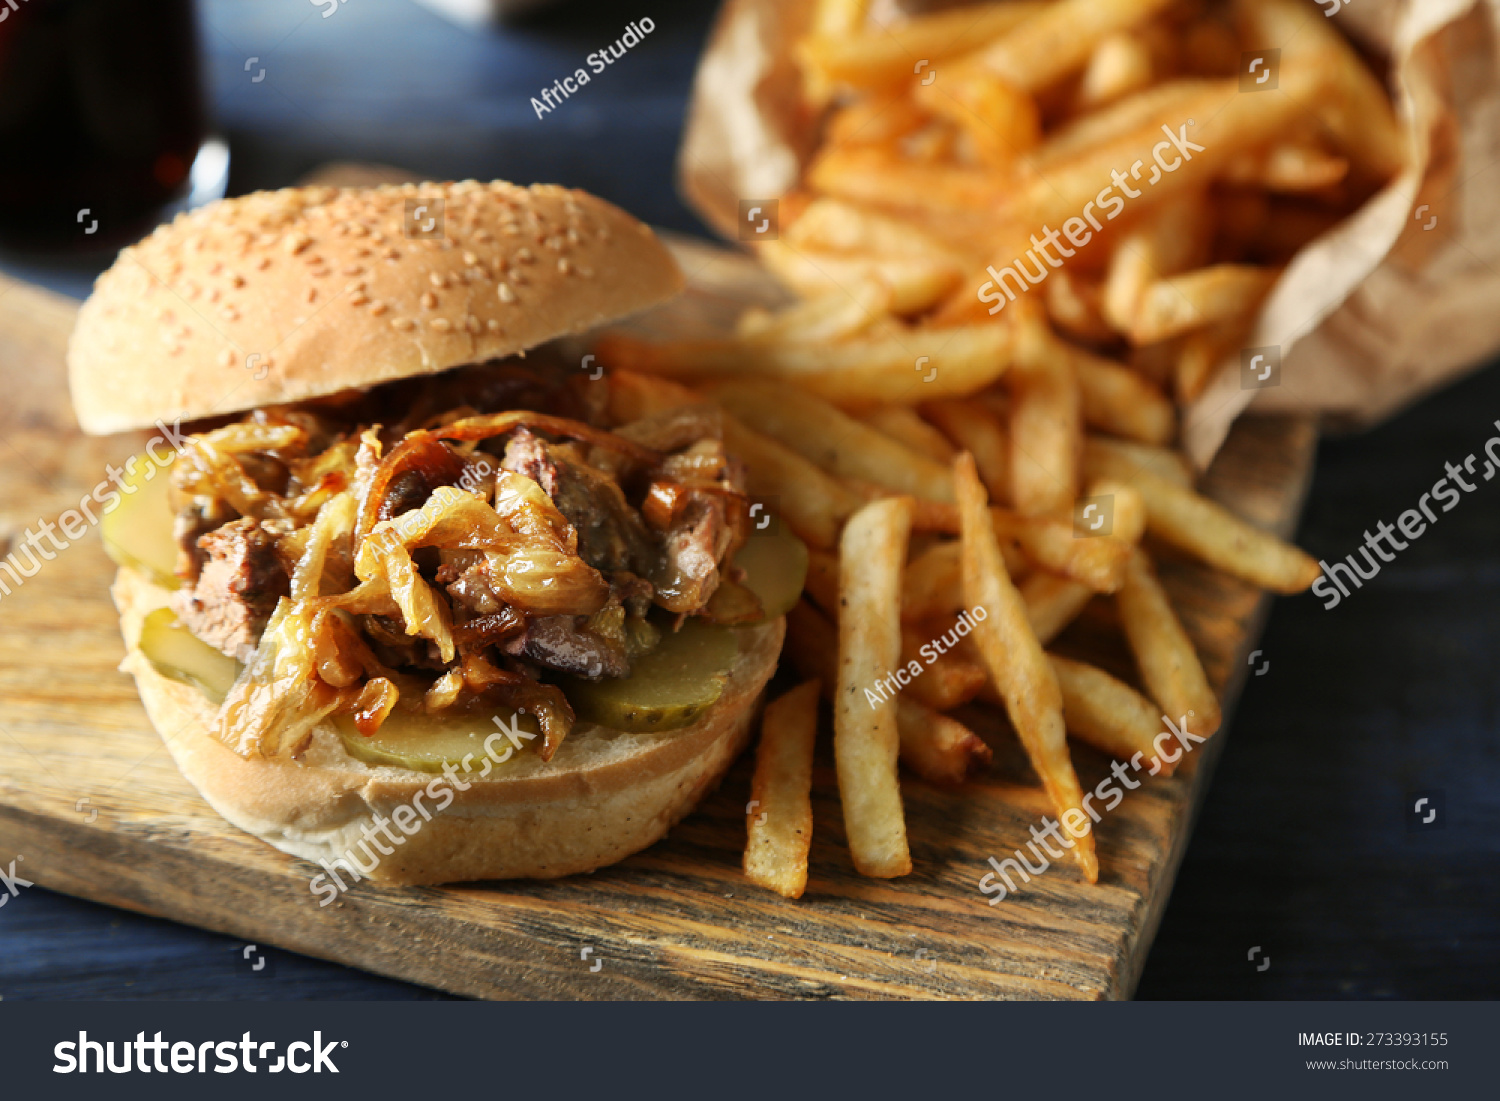 Unhealthy Food Plate Tasty Burger French Fr...